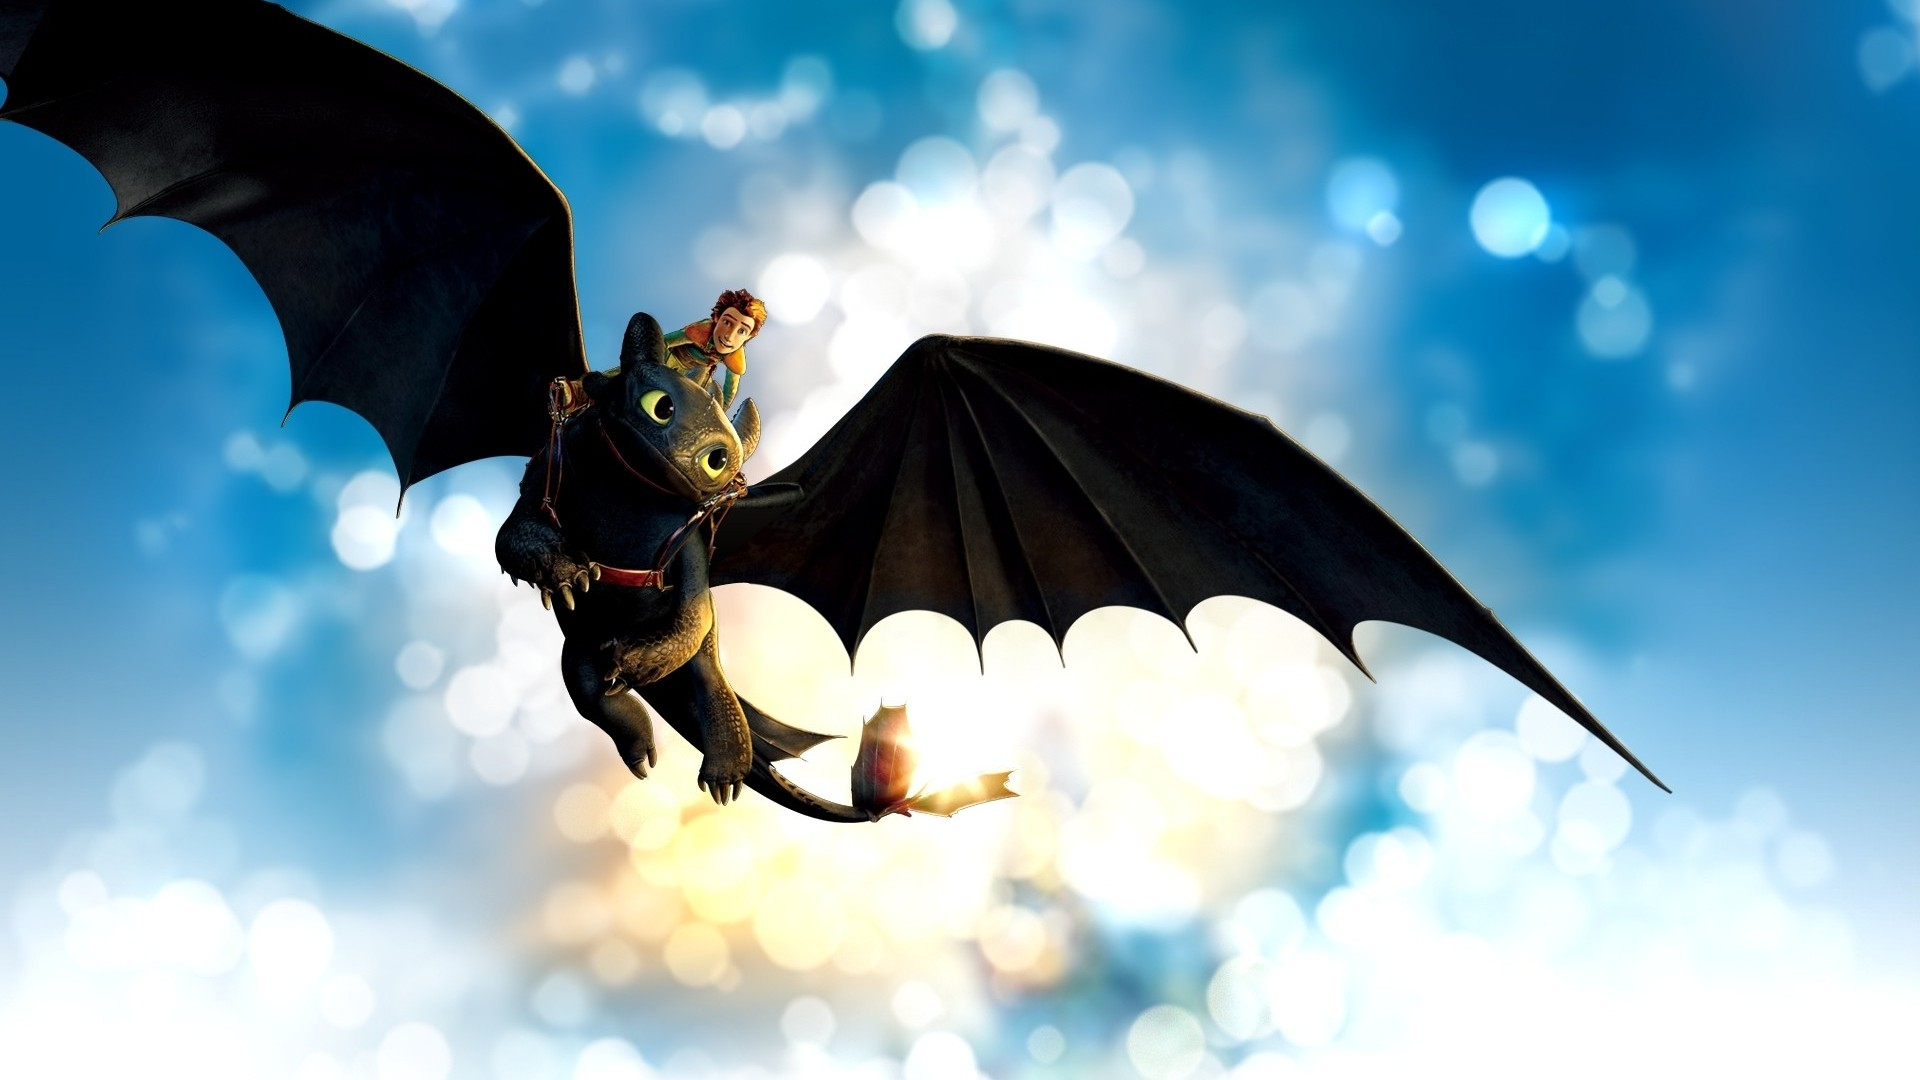 How To Train Your Dragon Wallpaper Hd 3 Free Hd Wallpaper. 1920x1080 - 192.22 KB - jpg 55